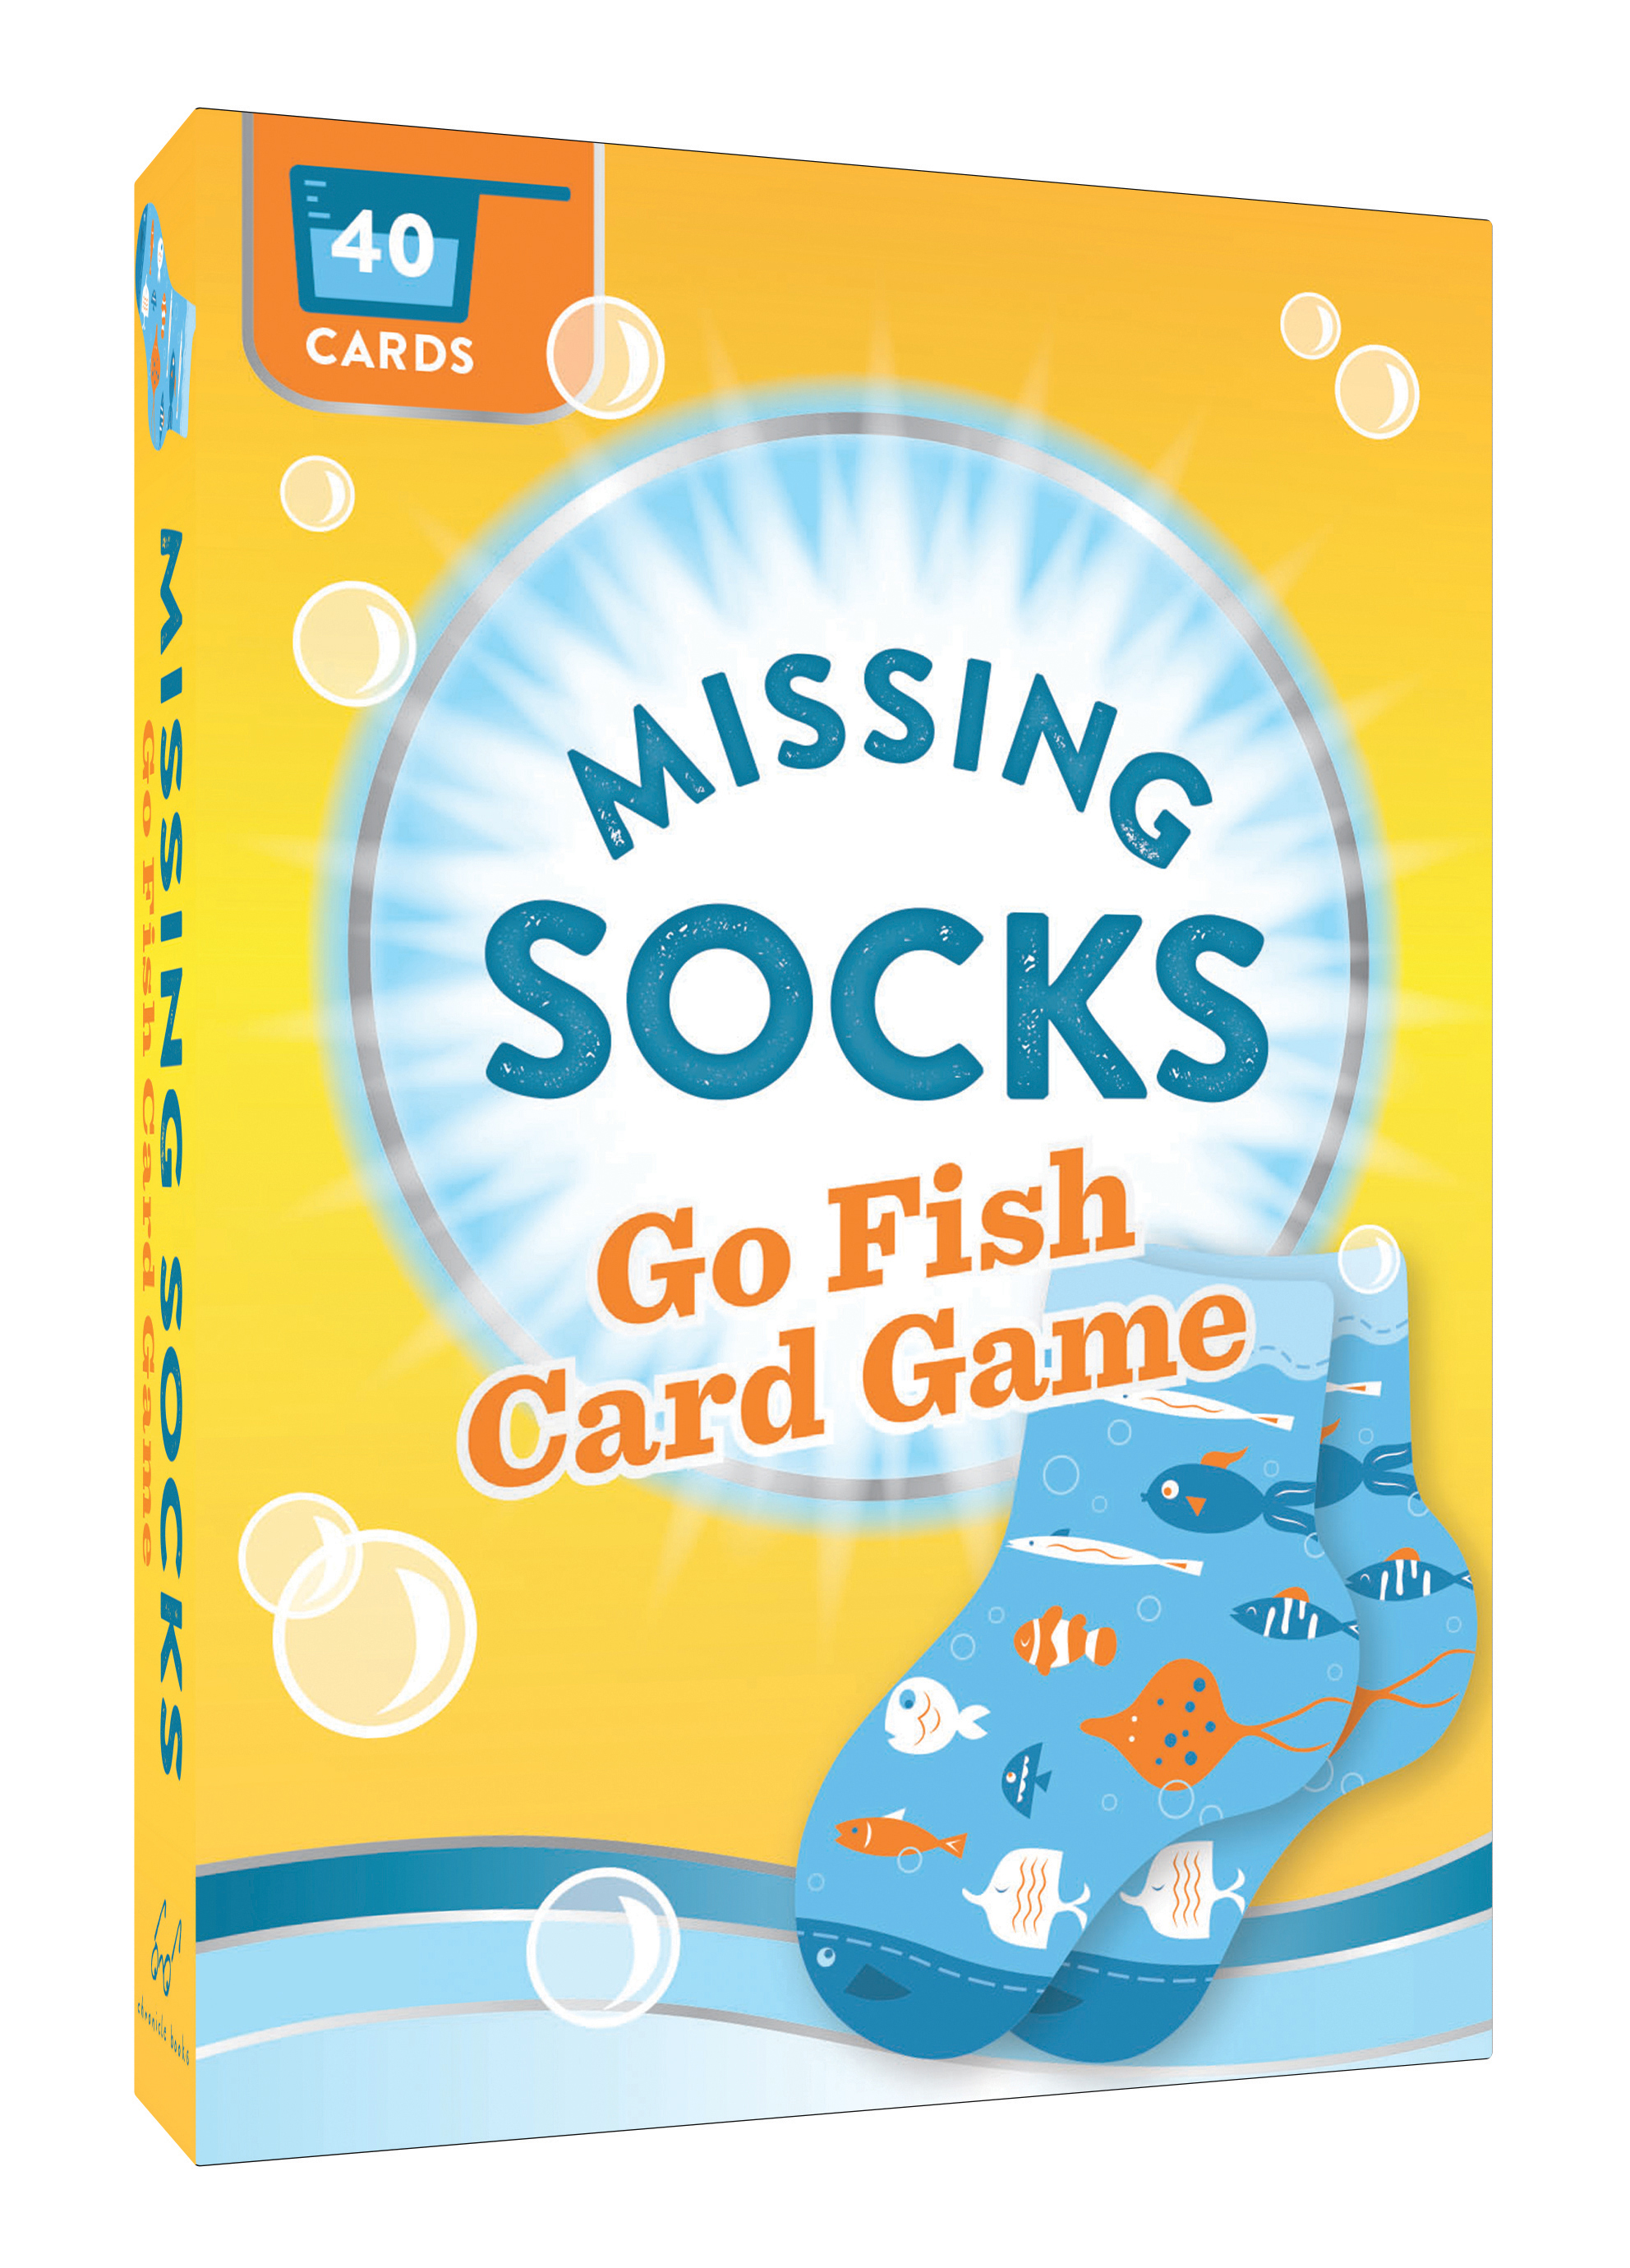 Back to school giveaway with playtestshare fab book for Fish card game